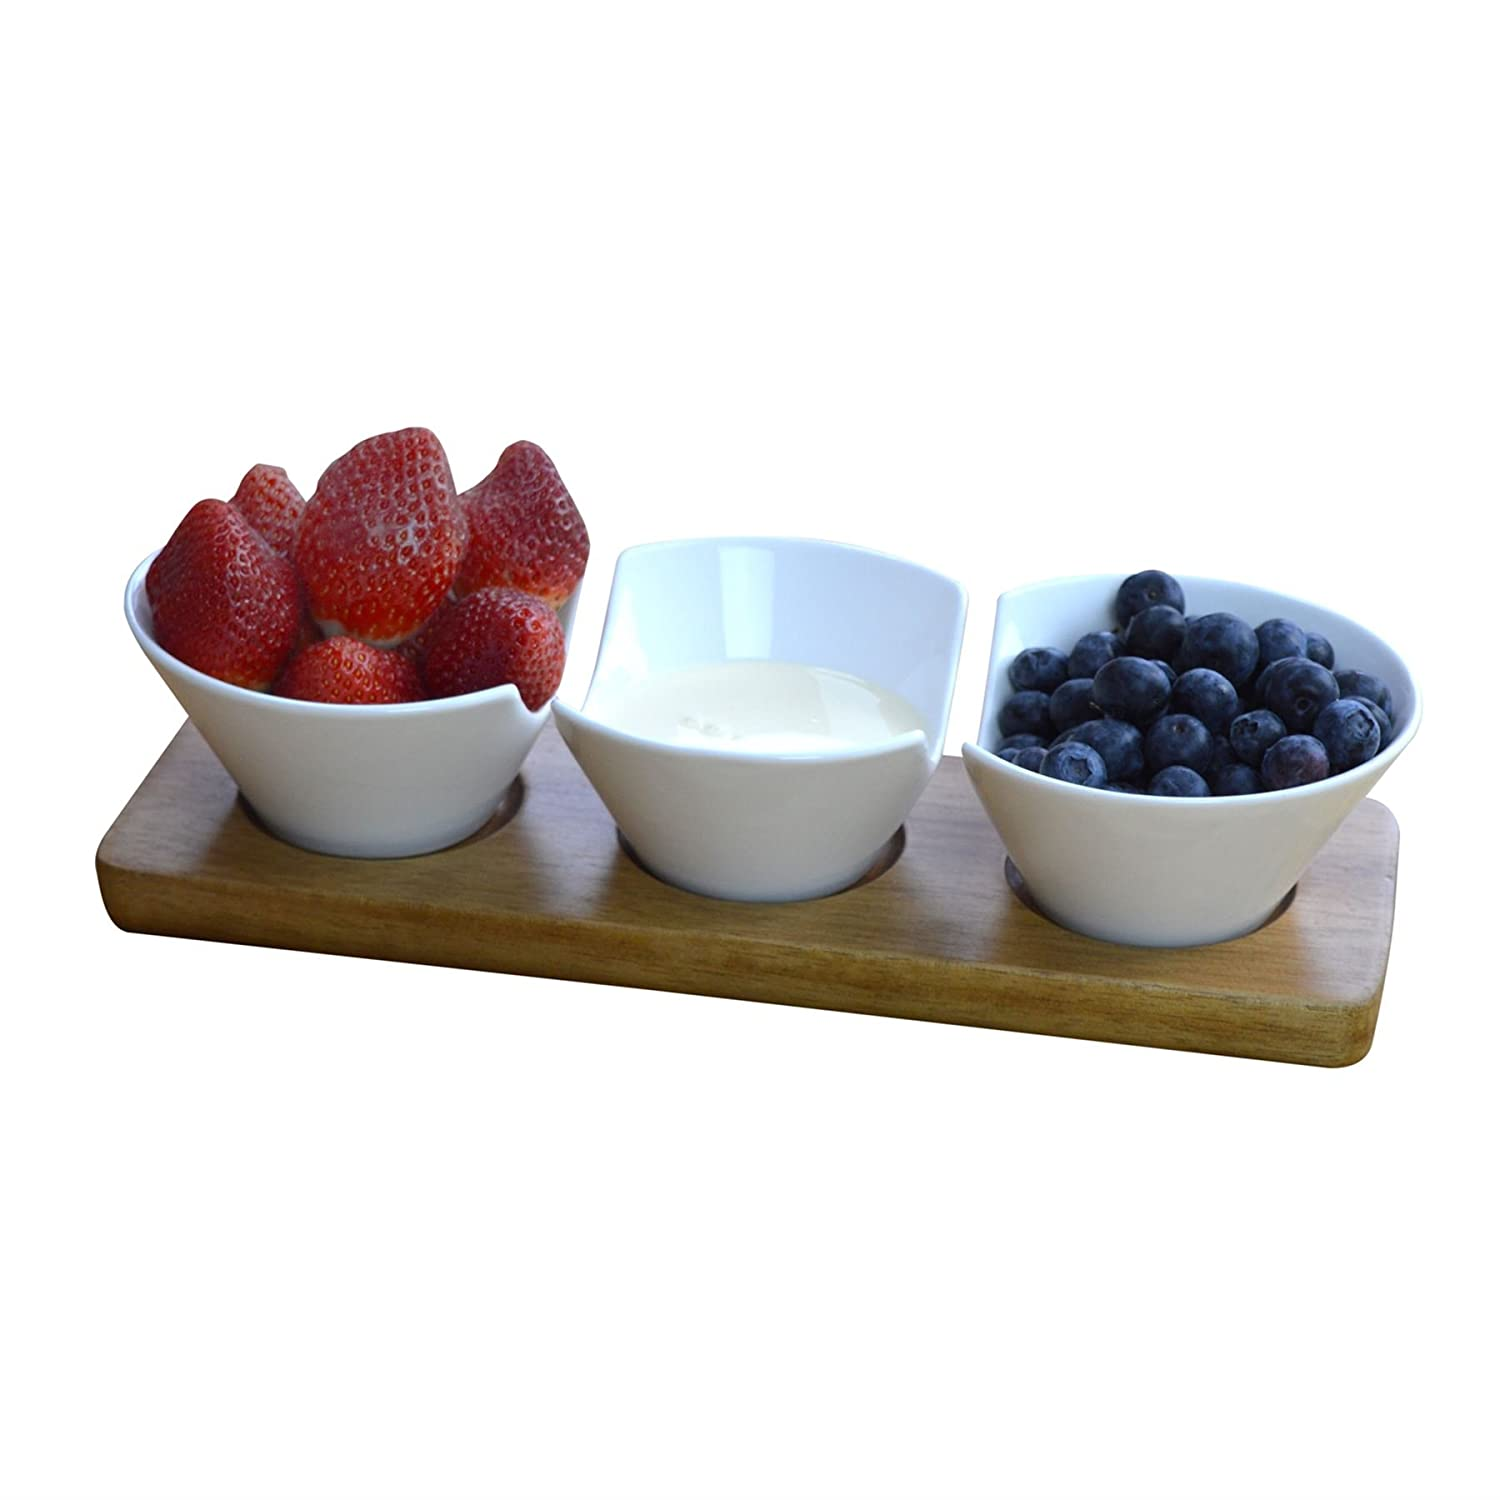 Argon Tableware Set Of 3 Dipping Snack/Tapas Serving Bowls On Wooden Serving Board